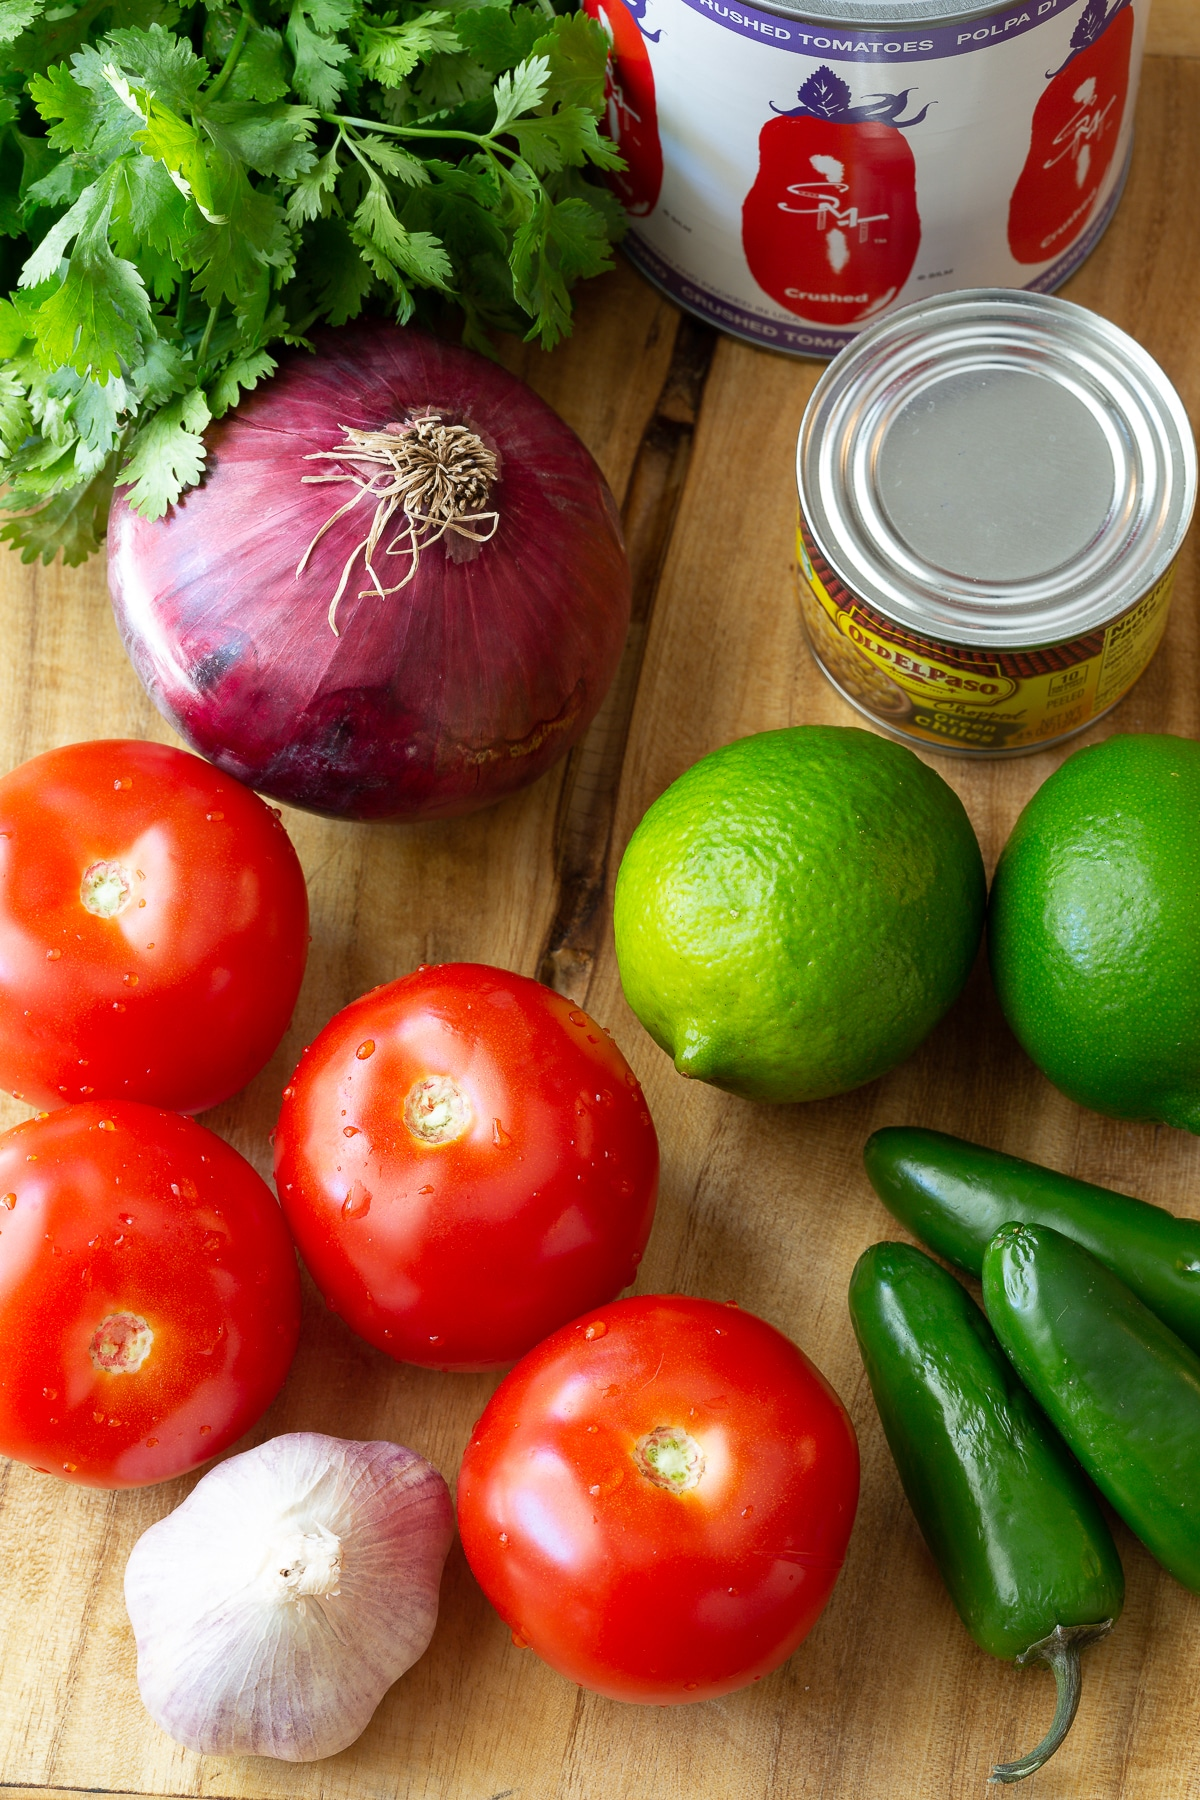 How To Make Salsa (Quick, Healthy & Delicious!) #ASpicyPerspective #salsa #mexican #cincodemayo #fresh #homemade #best